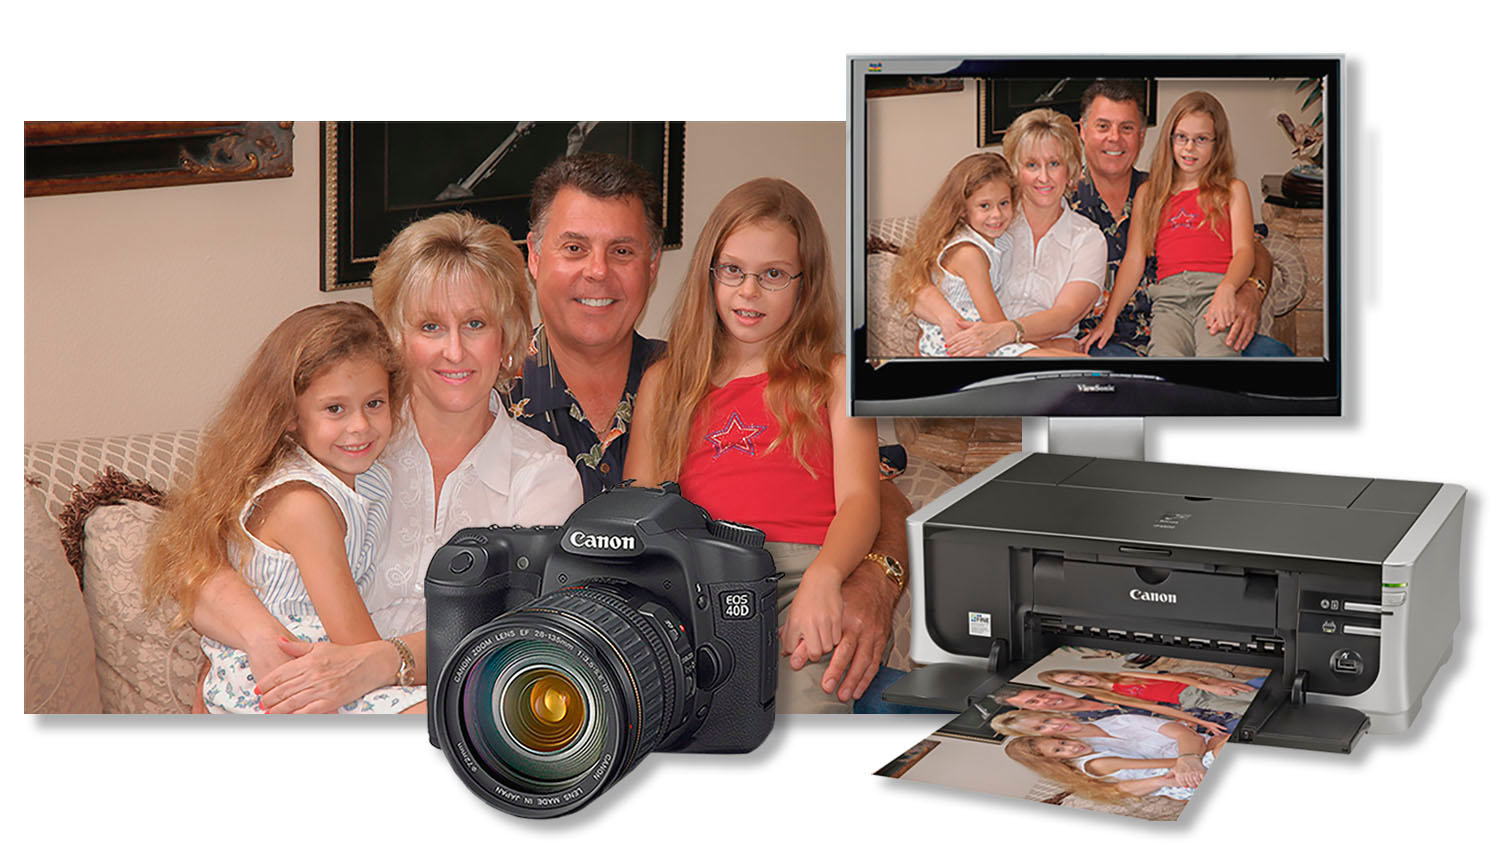 https://i0.wp.com/digital-photography-school.com/wp-content/uploads/2019/08/Camera-Monitor-Printer-Guinn.jpg?resize=1500%2C844&ssl=1